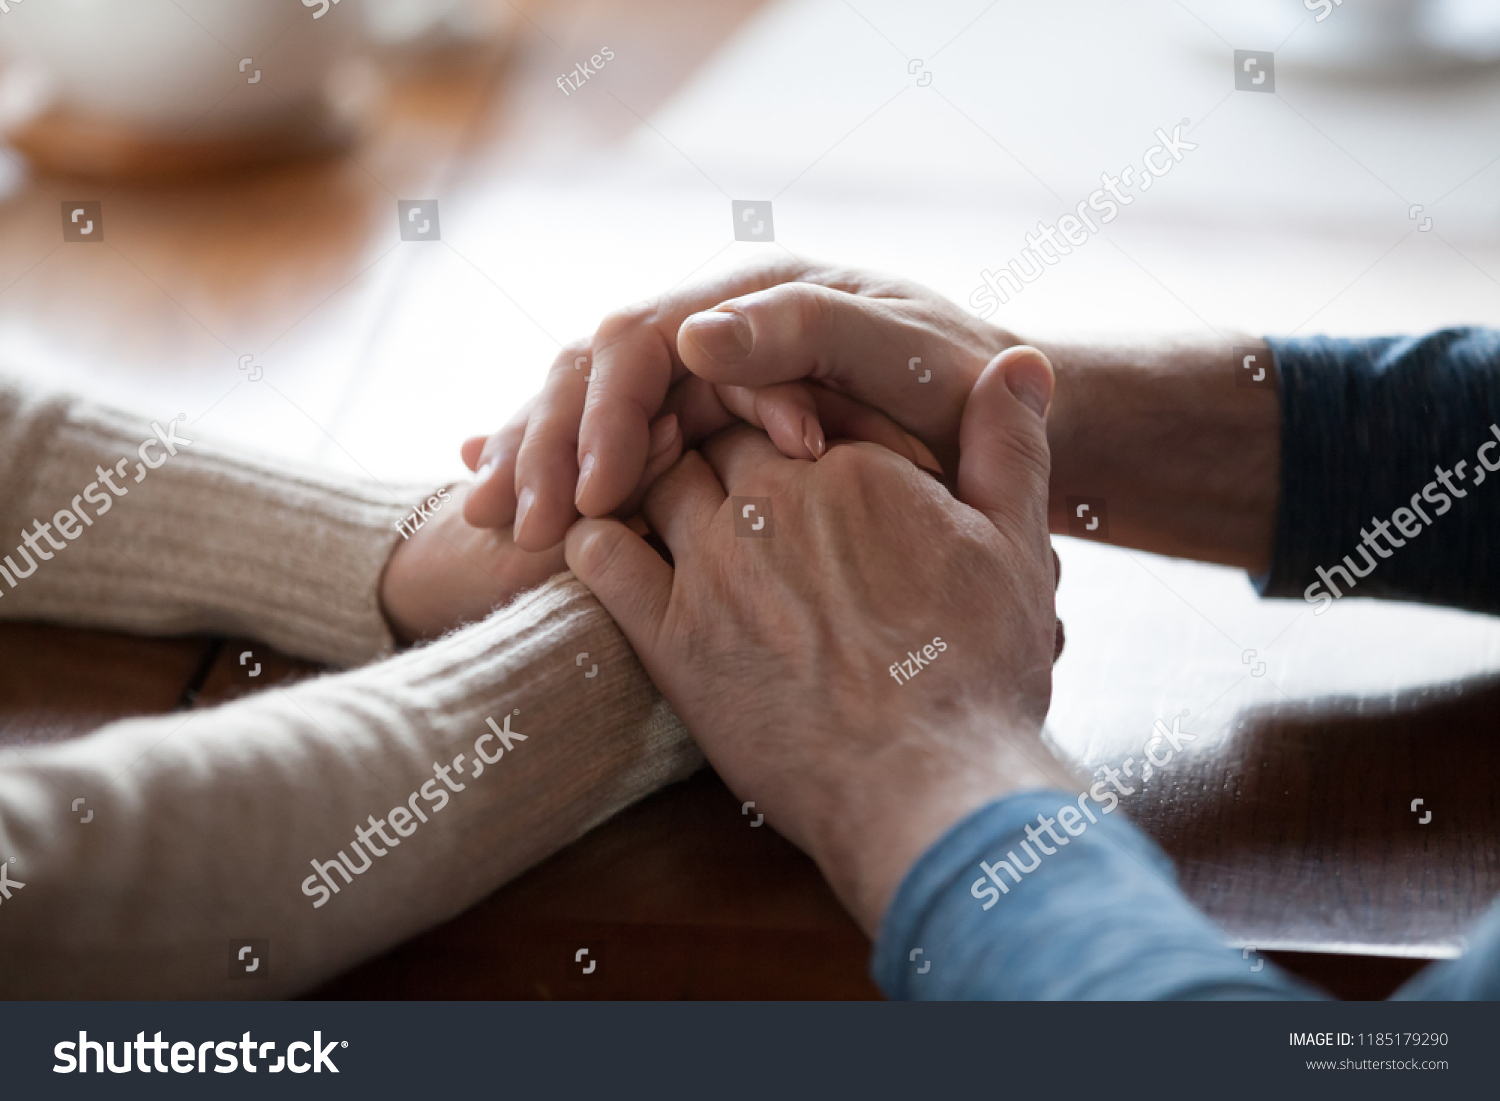 Old middle aged people holding hands close up view, senior retired family couple express care as psychological support concept, trust in happy marriage, empathy hope understanding love for many years #1185179290